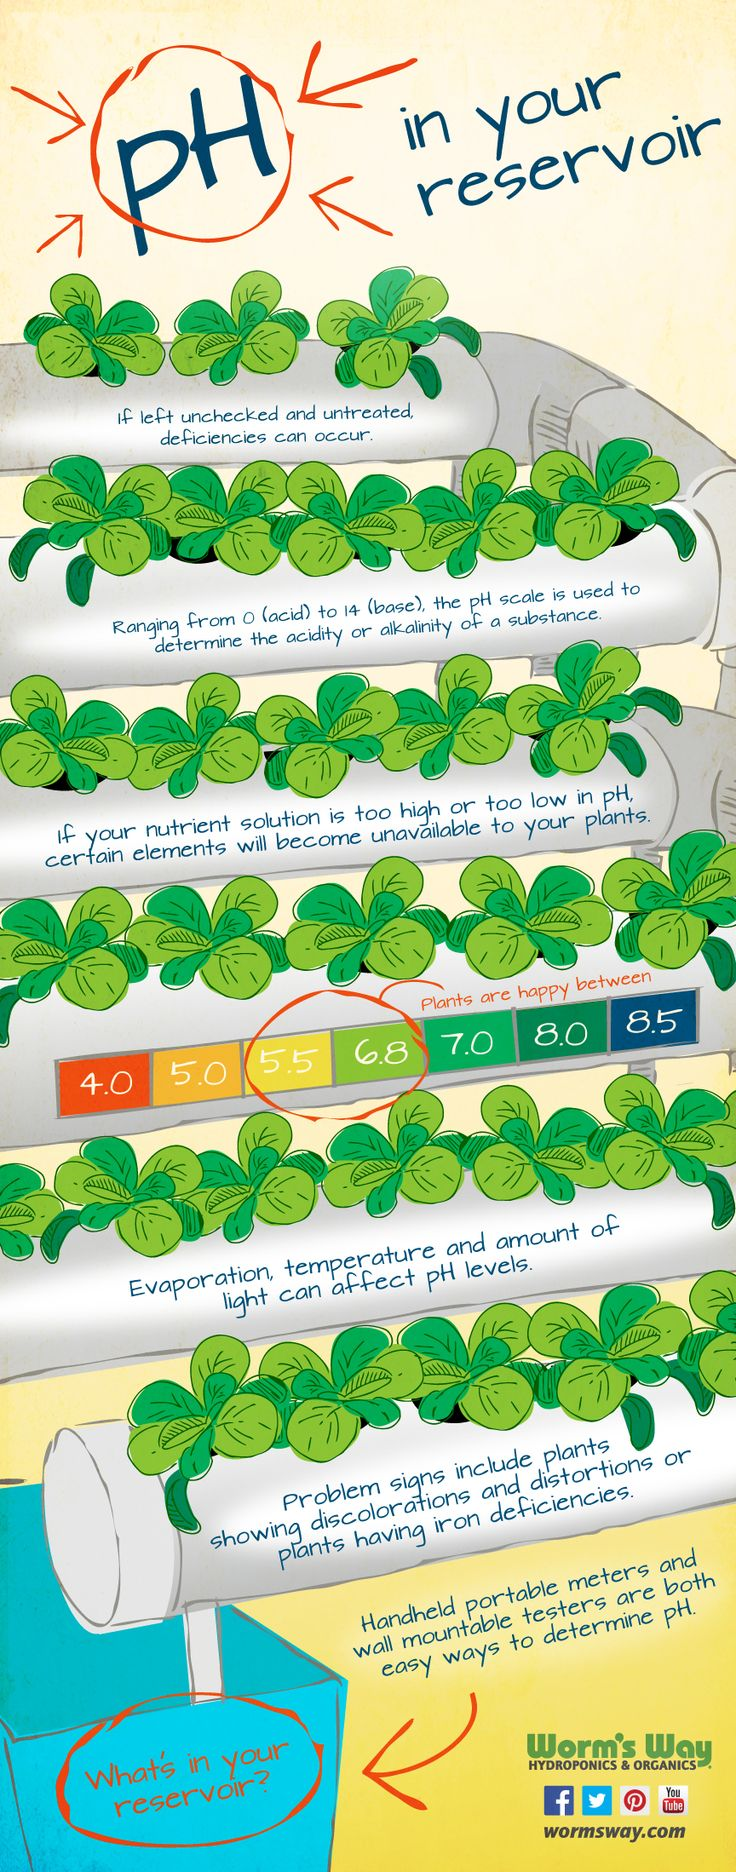 pH in your reservoir, hydroponics